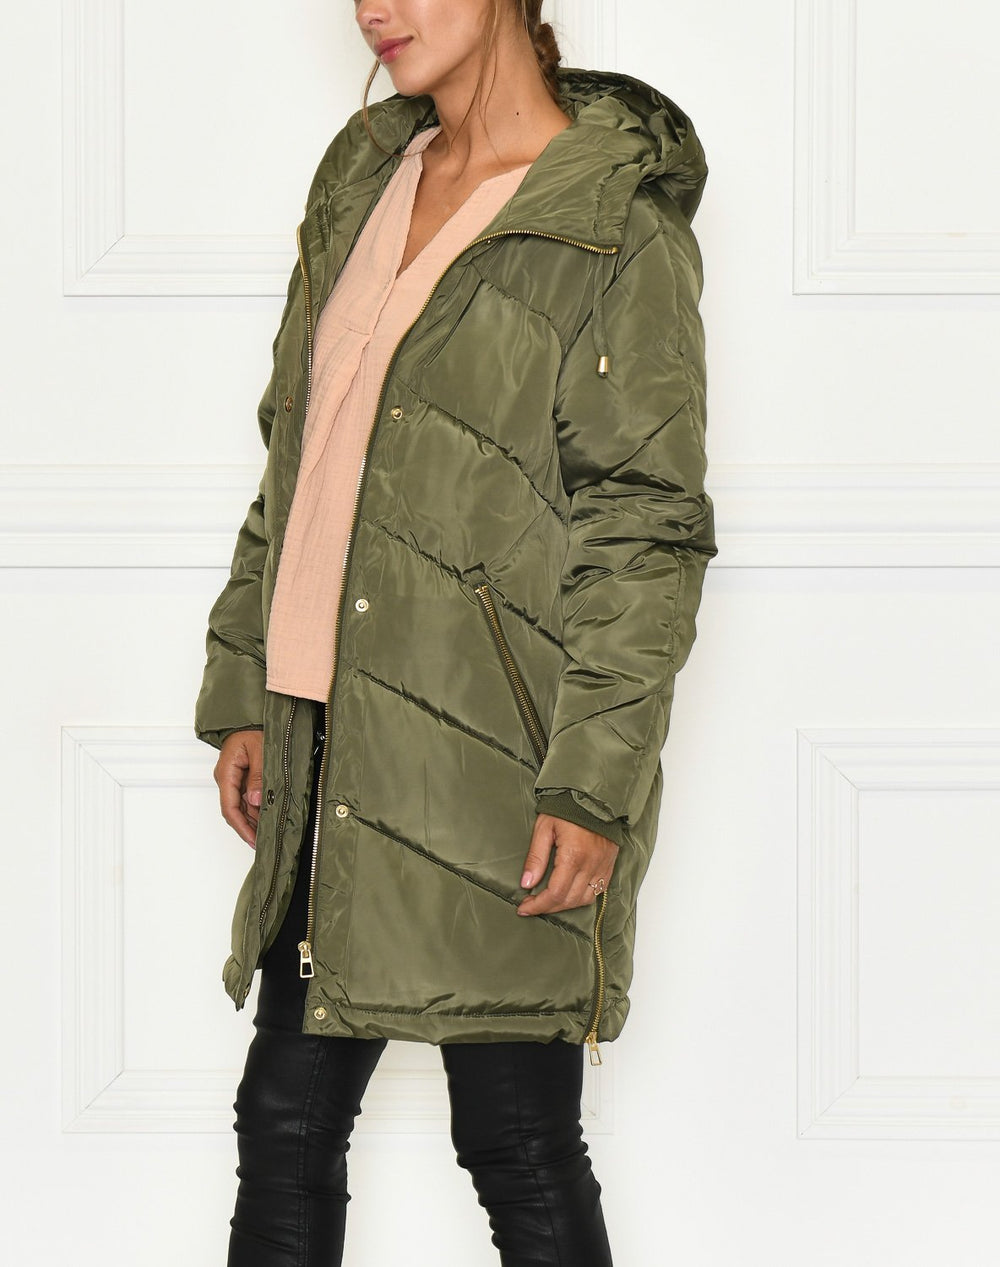 Kaffe KAJetta outerwear jacket grape leaf - Online-Mode